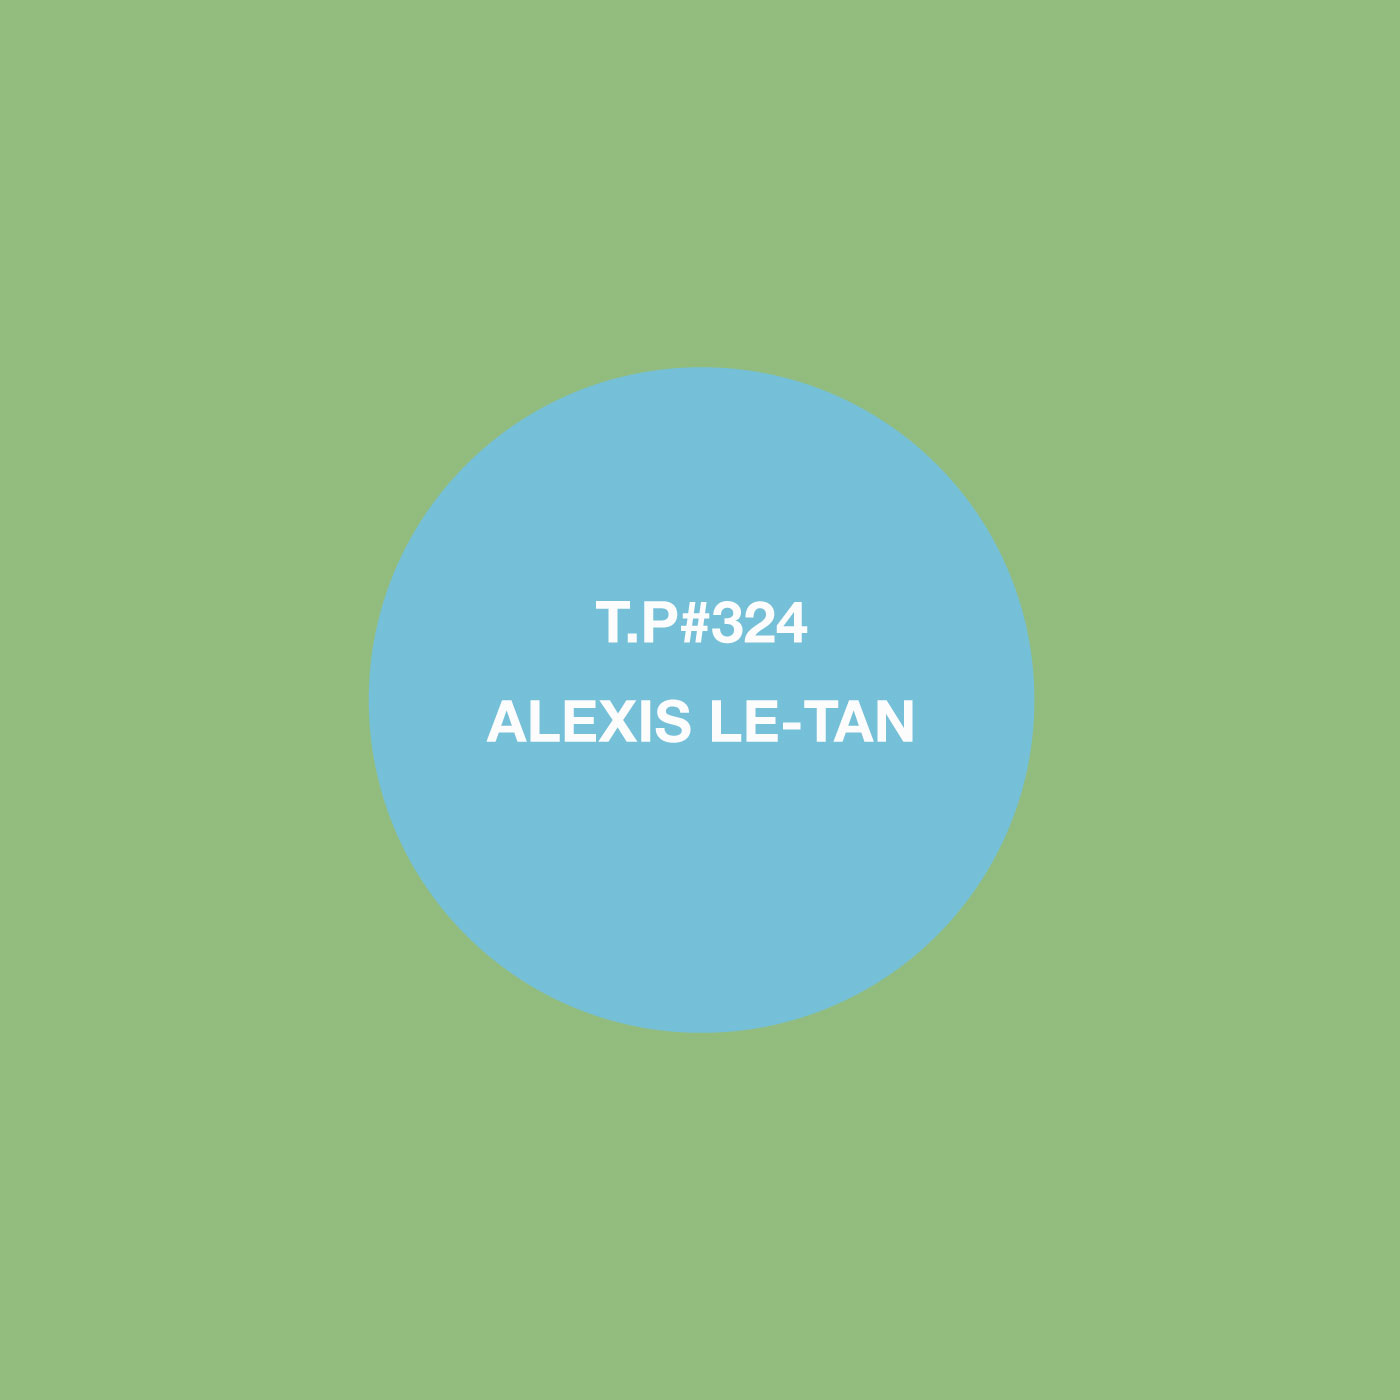 Alexis Le-Tan, Ill Studio, Crowdspacer, Joakim, Mix, Test Pressing